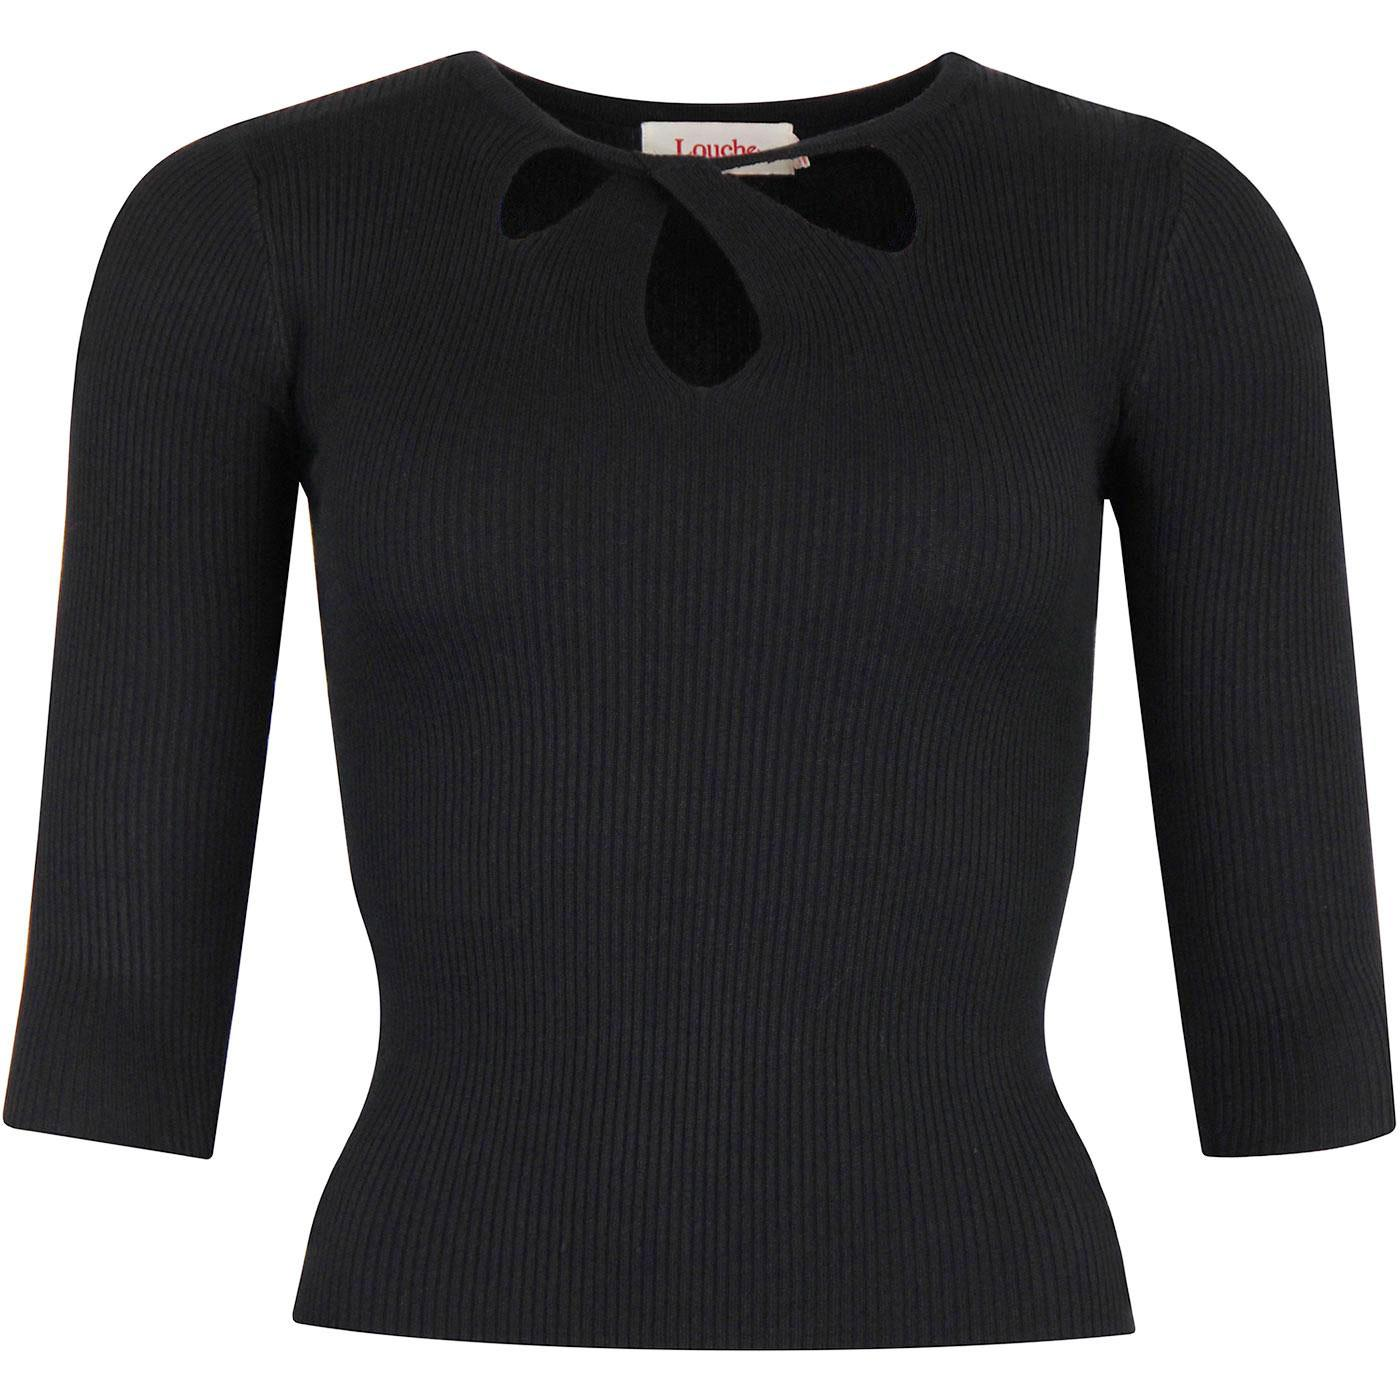 Lylou LOUCHE Retro Vintage Twist Collar Top in (B)